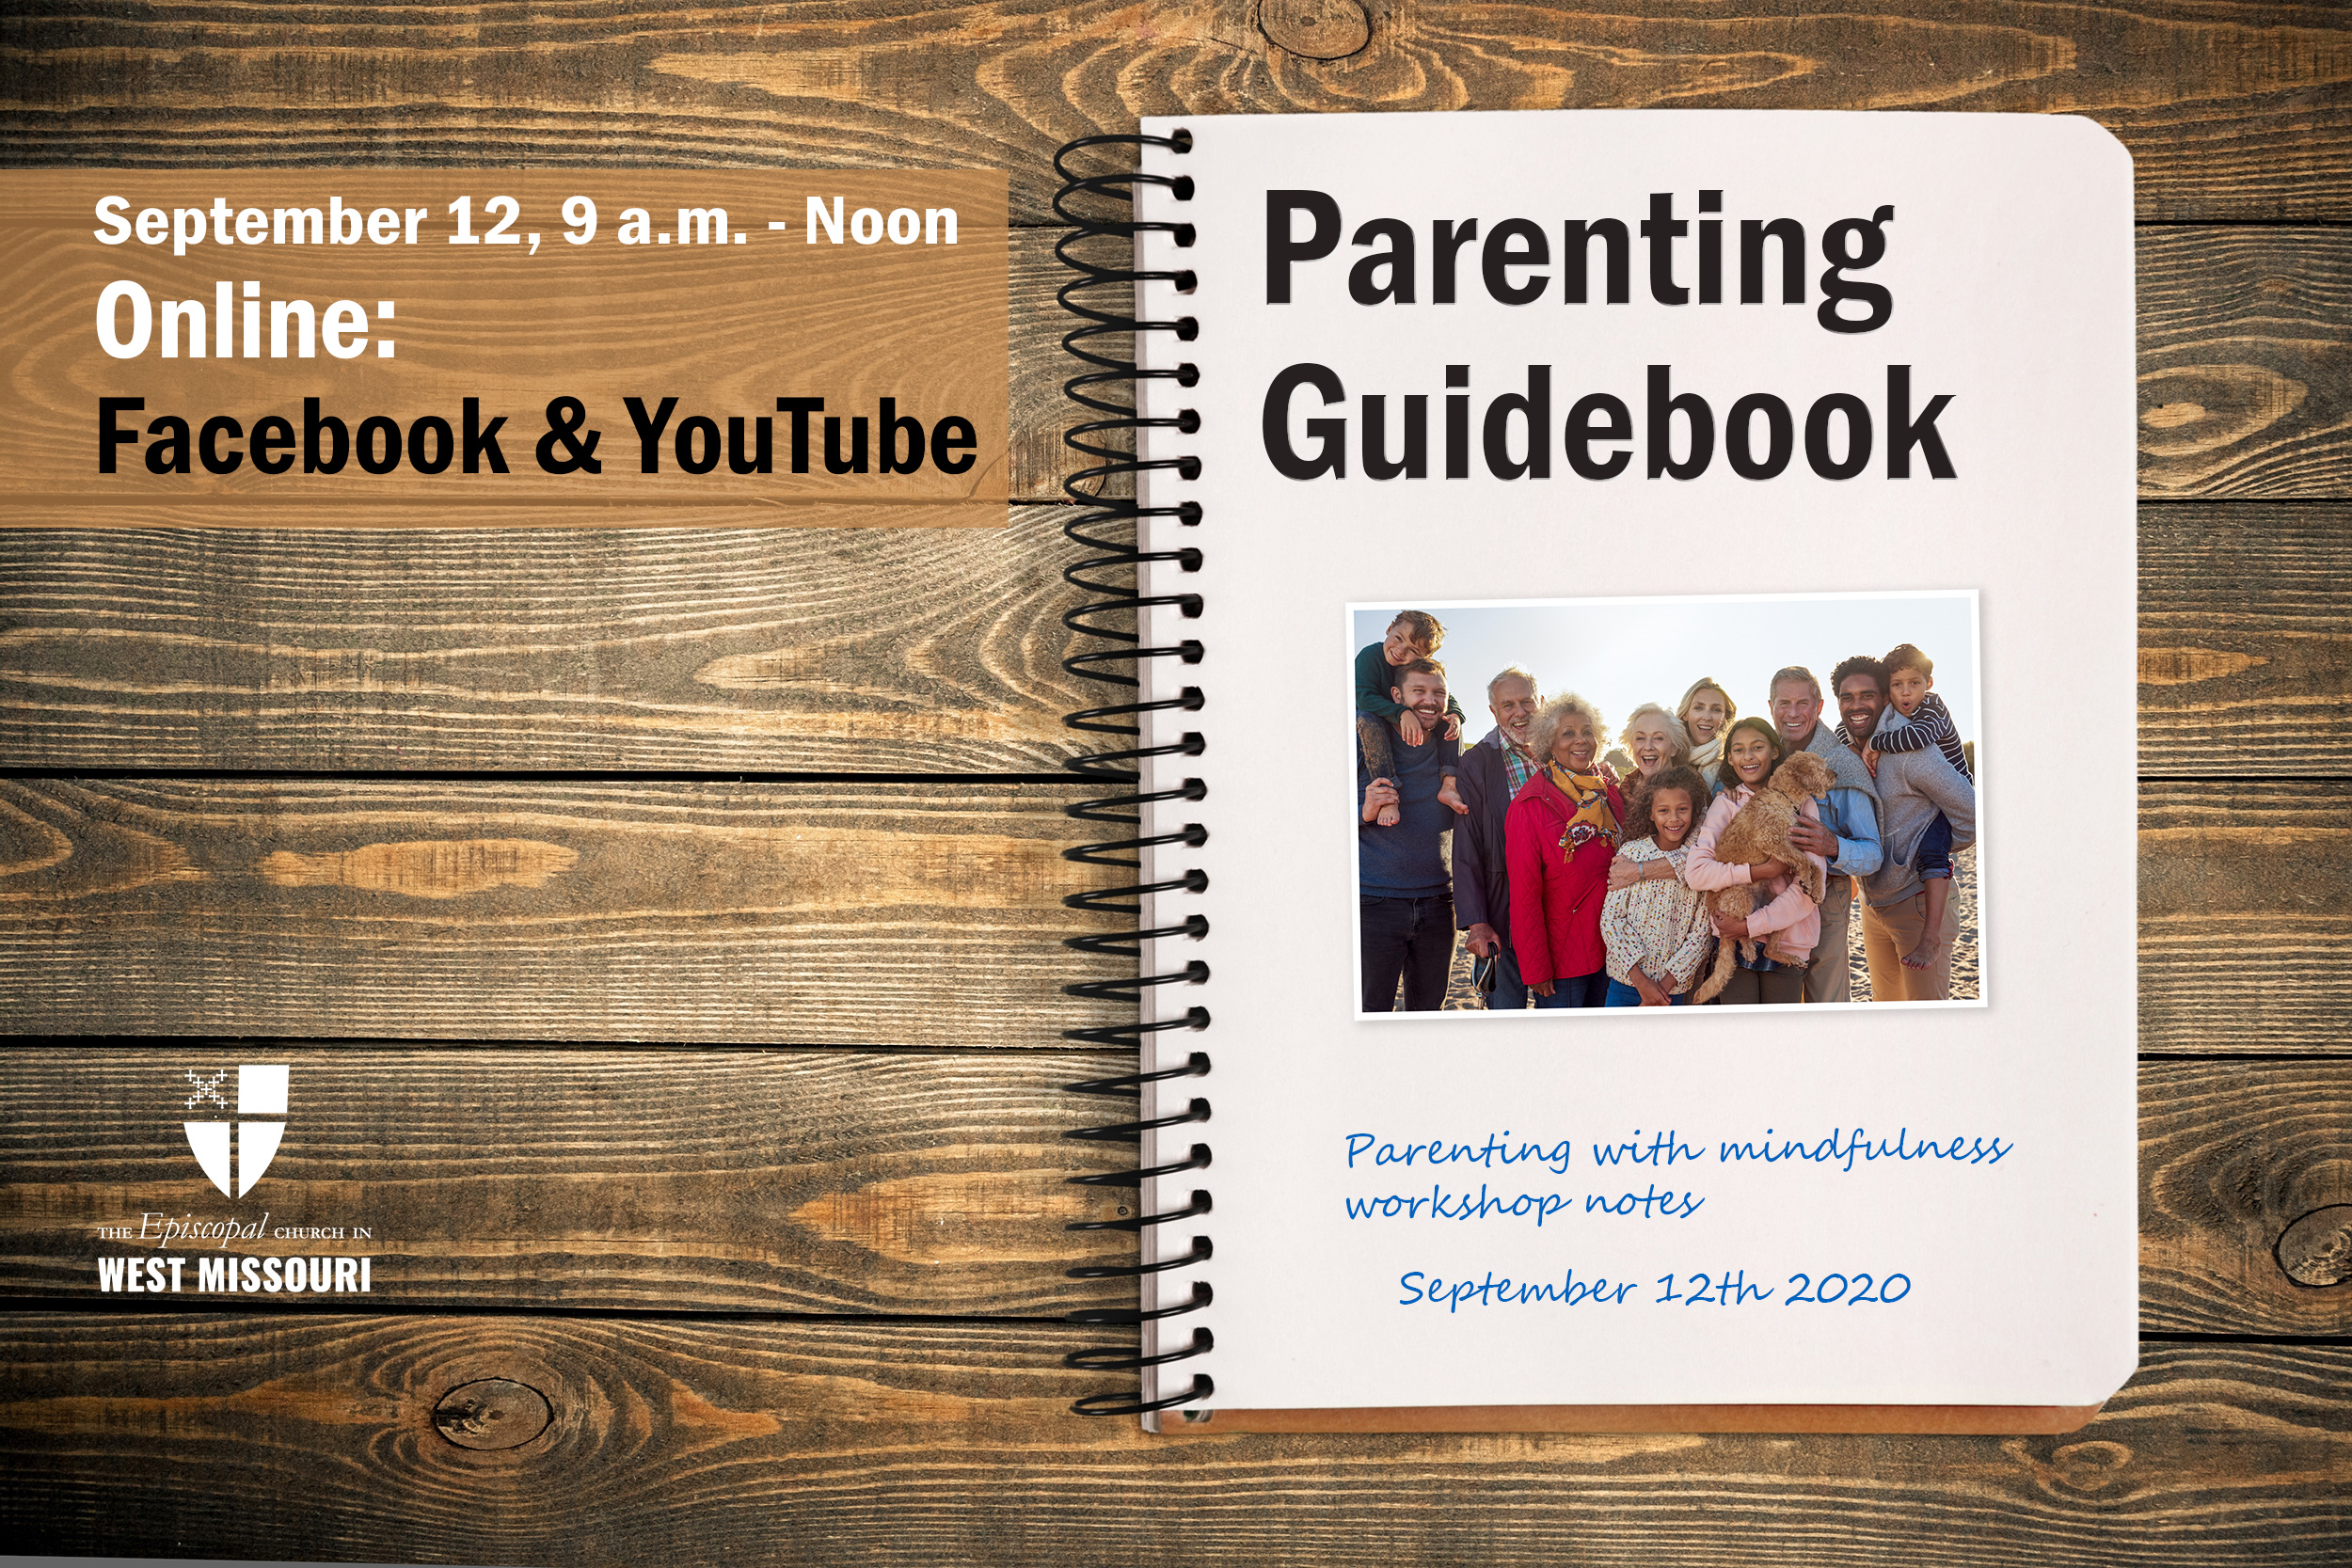 Parenting: You got the guidebook, right?